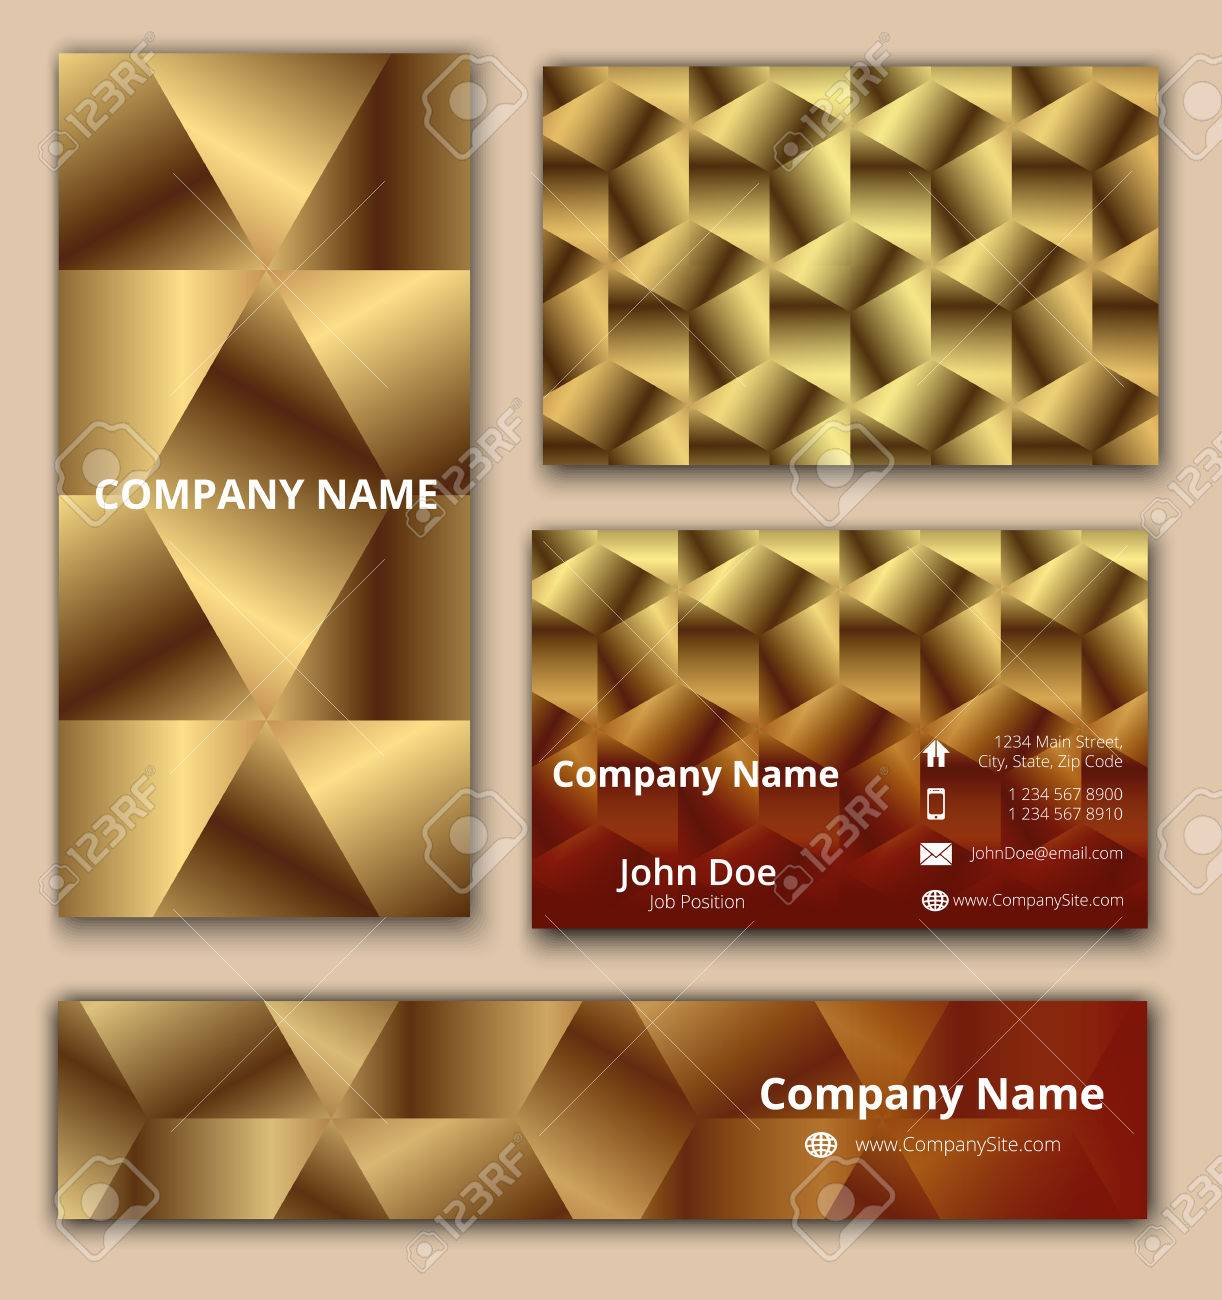 Corporate Identity Set Of Business Card Banner And Invitation